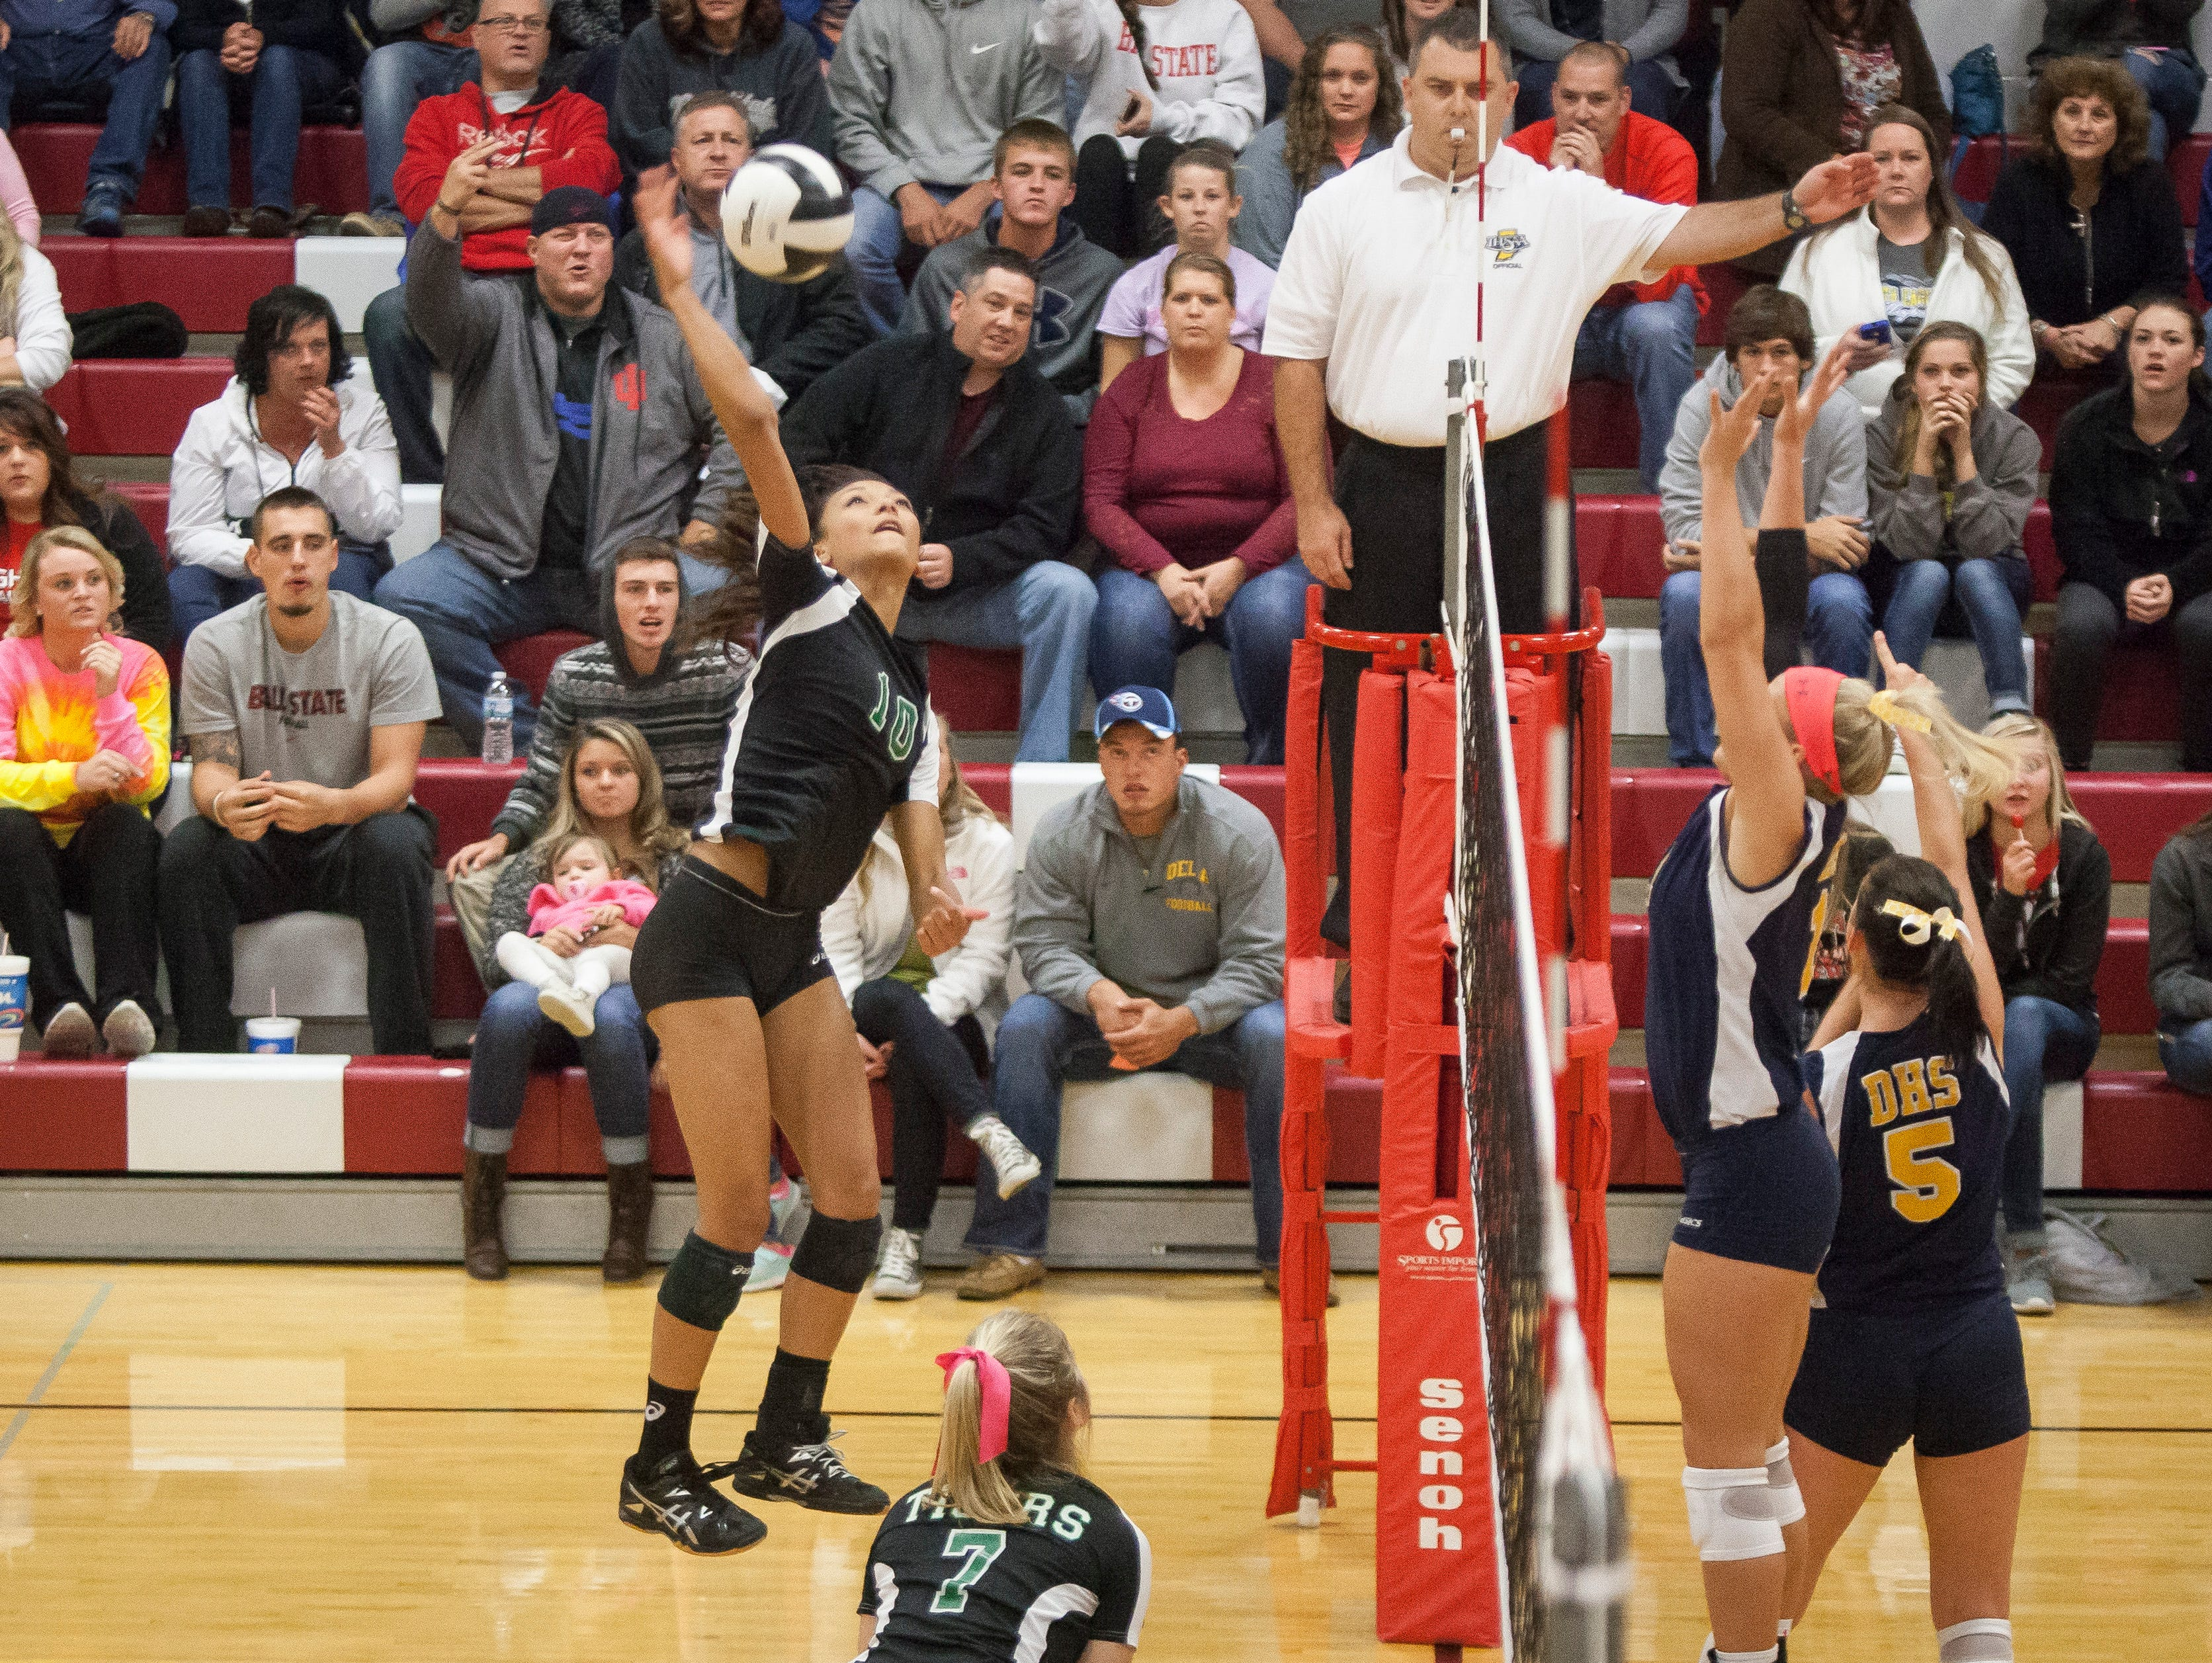 Yorktown won against Delta 3-0 for the County Title Saturday night at Wapahani High School.